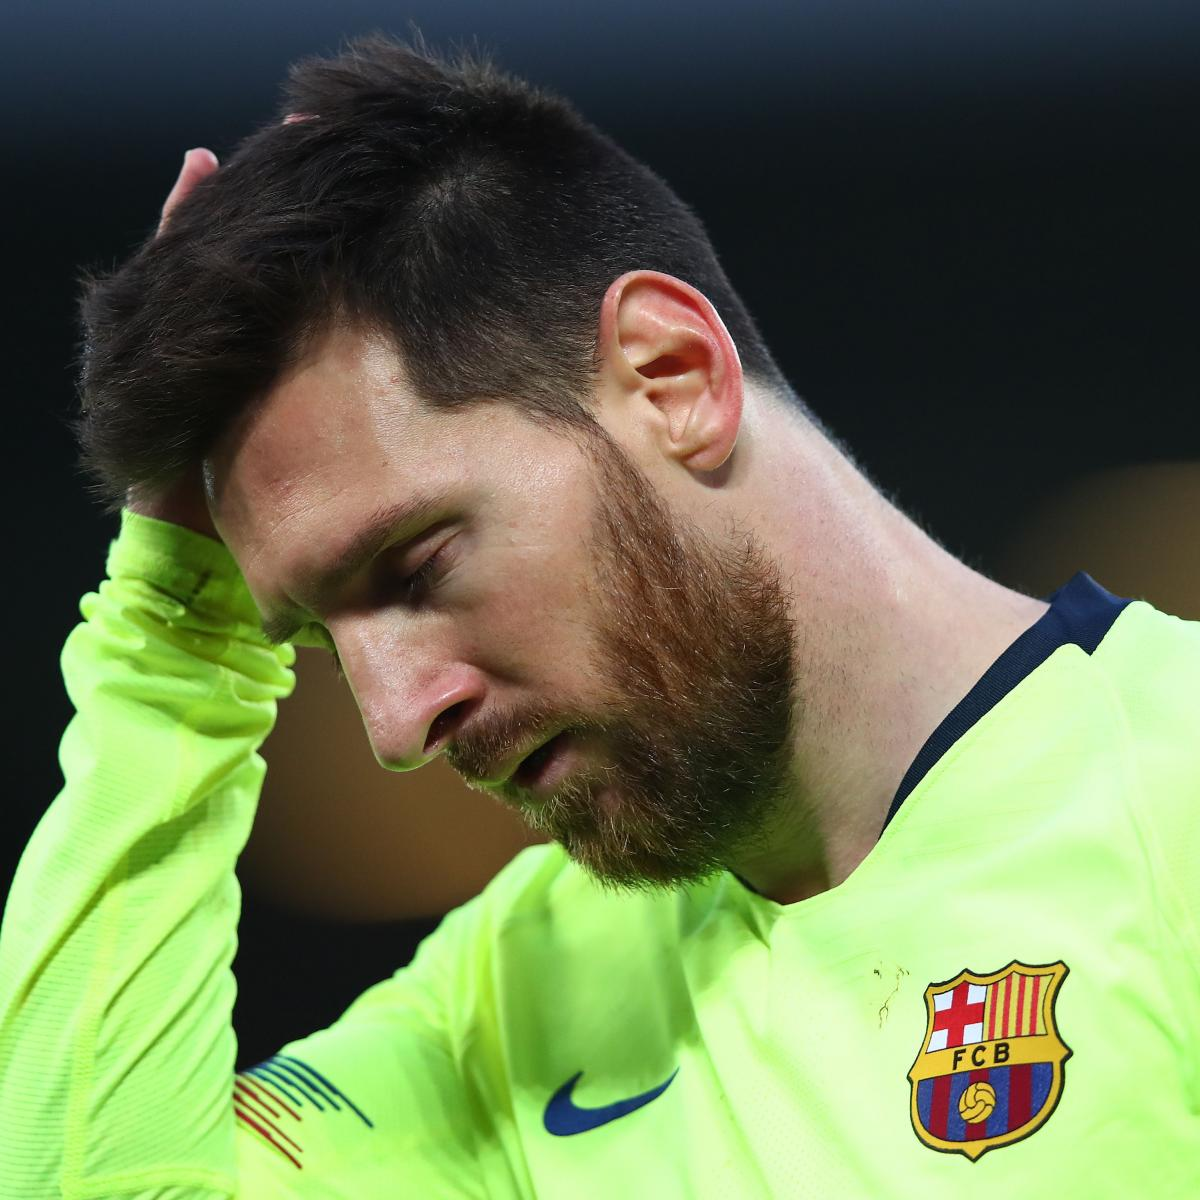 Report: Lionel Messi Cried After Barcelona Loss; Hassled by Fans on Video